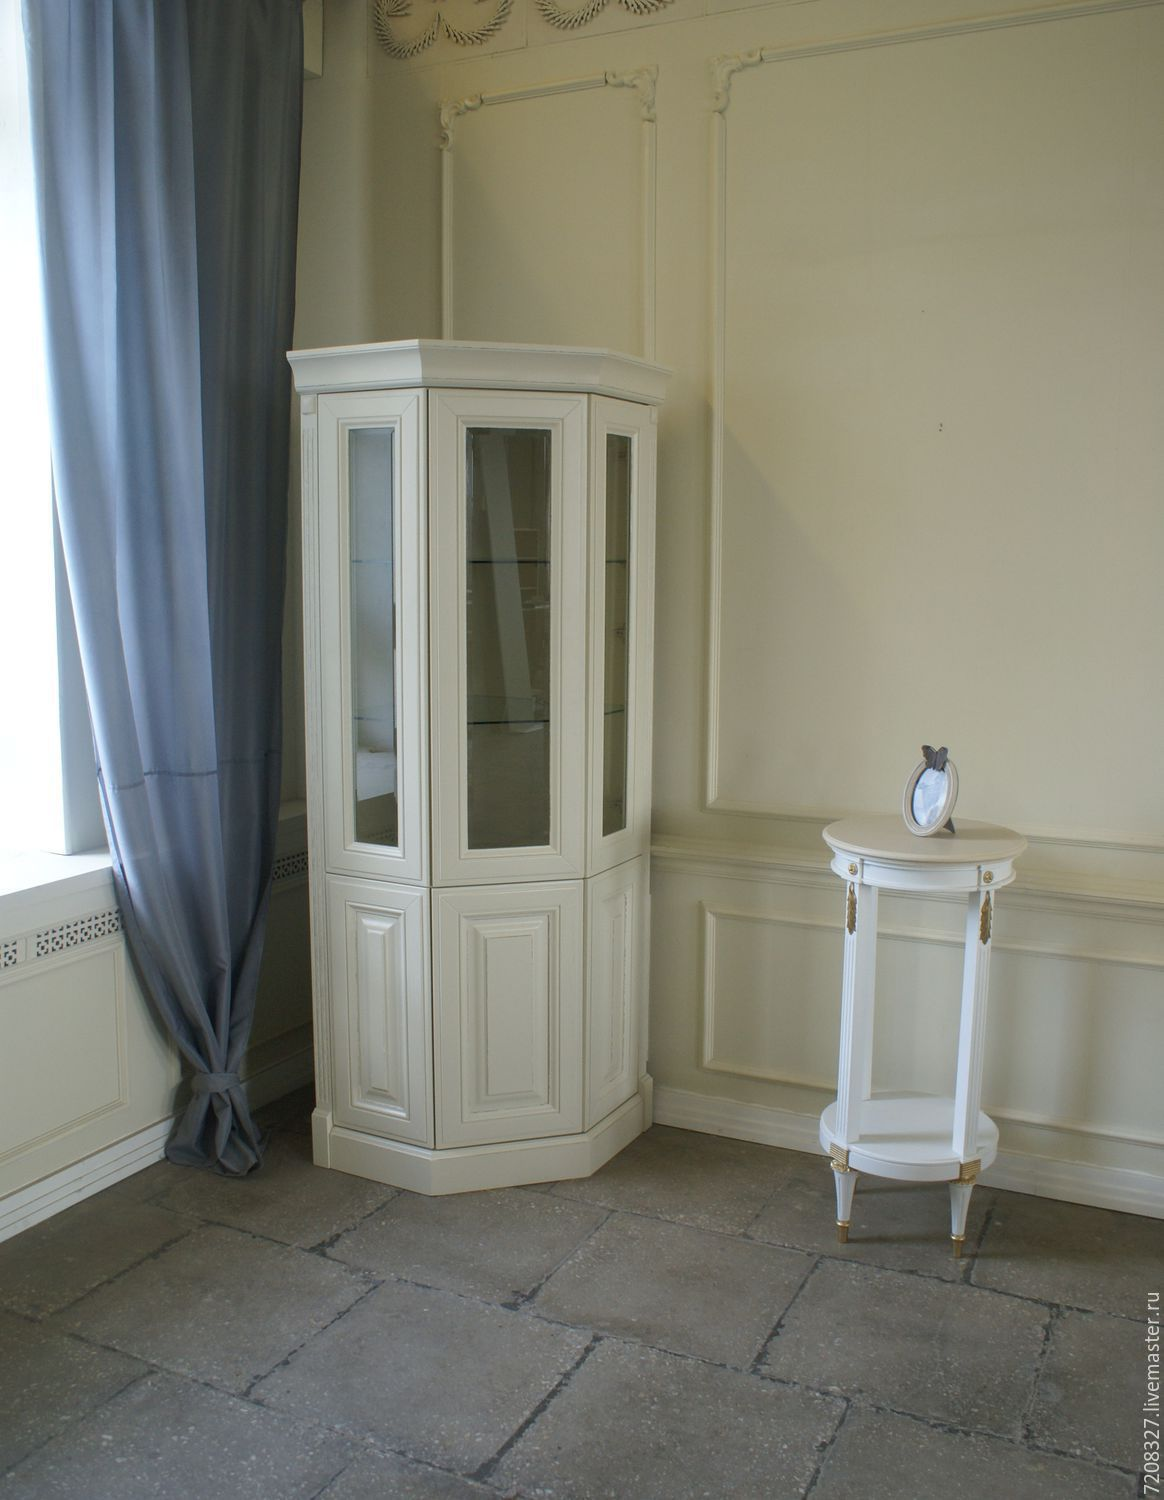 Corner Cabinet-cupboard. Has six sections with shelves for storage. Shelves behind glass doors glass handling euroedge.